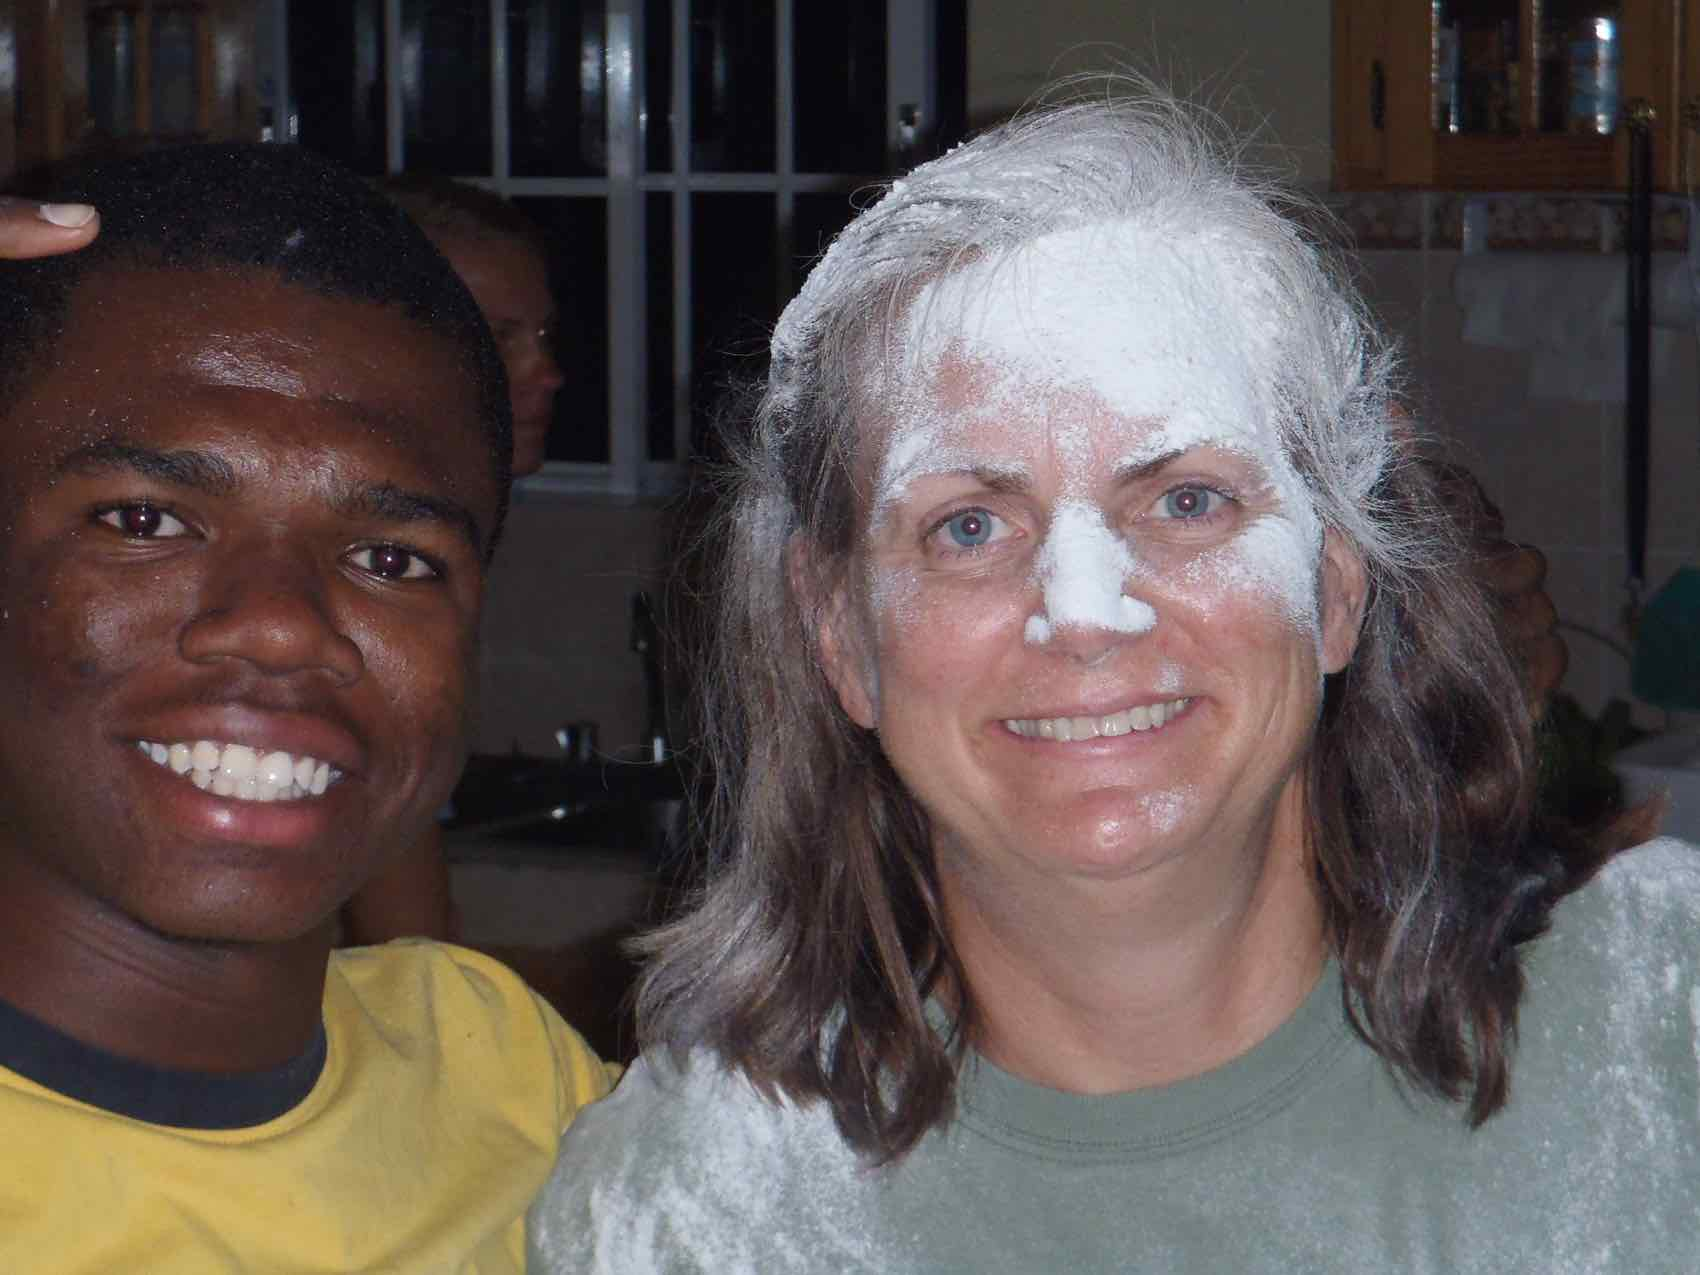 in Jamaica they think dousing their friends with flour is fun